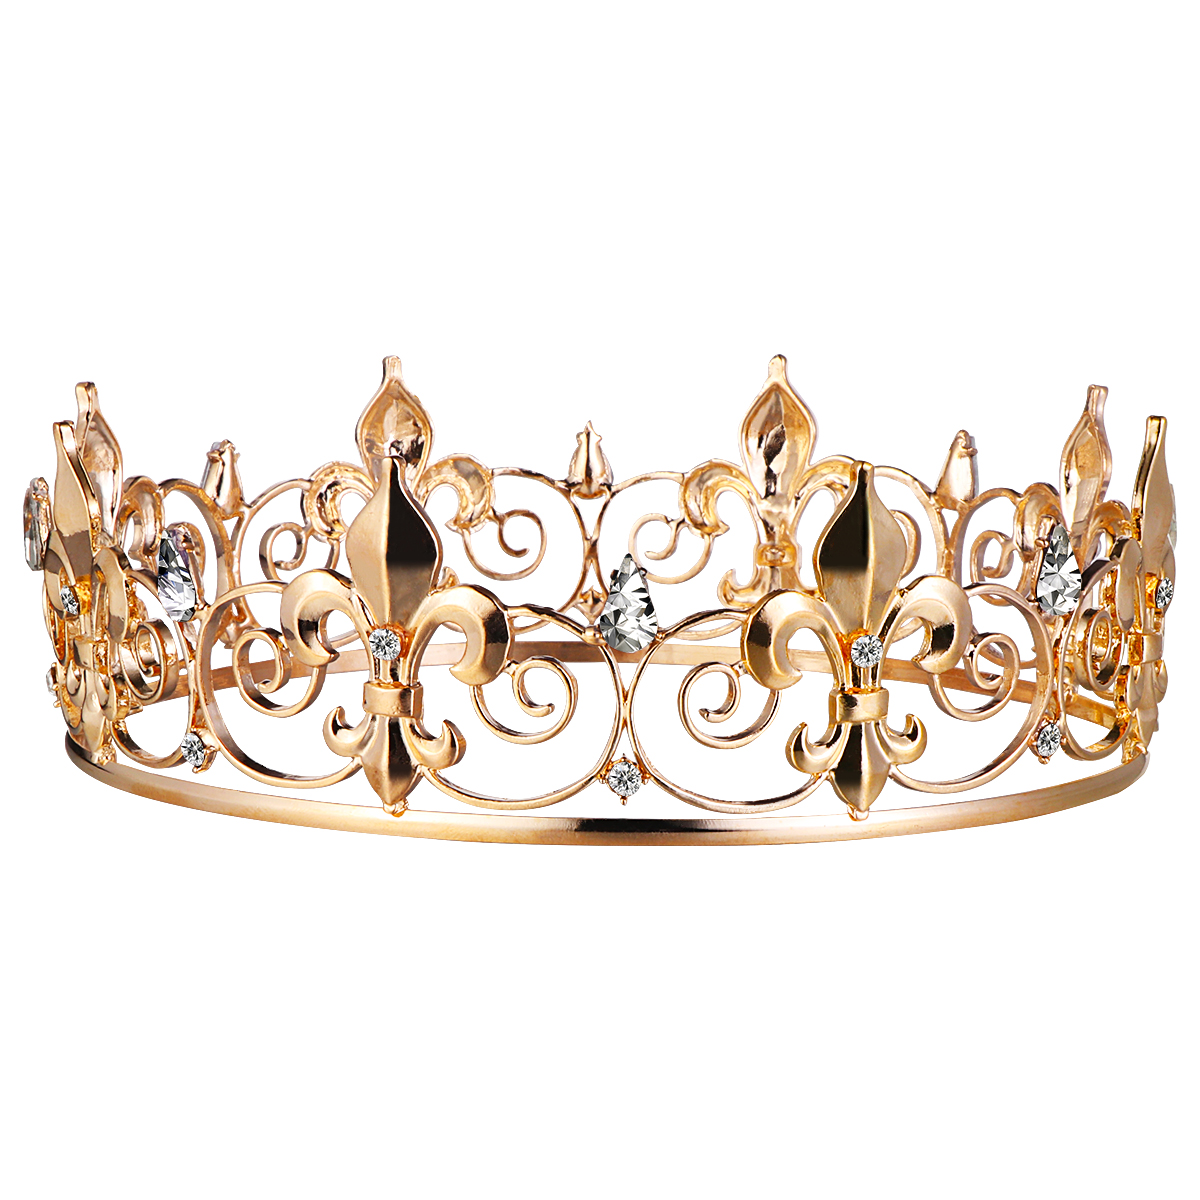 Frcolor Vintage Crown Wedding Tiara Elegant Bridal Gold Headband Hair Jewelry Accessories Unisex Wedding Birthday Party Supplies in Party DIY Decorations from Home Garden